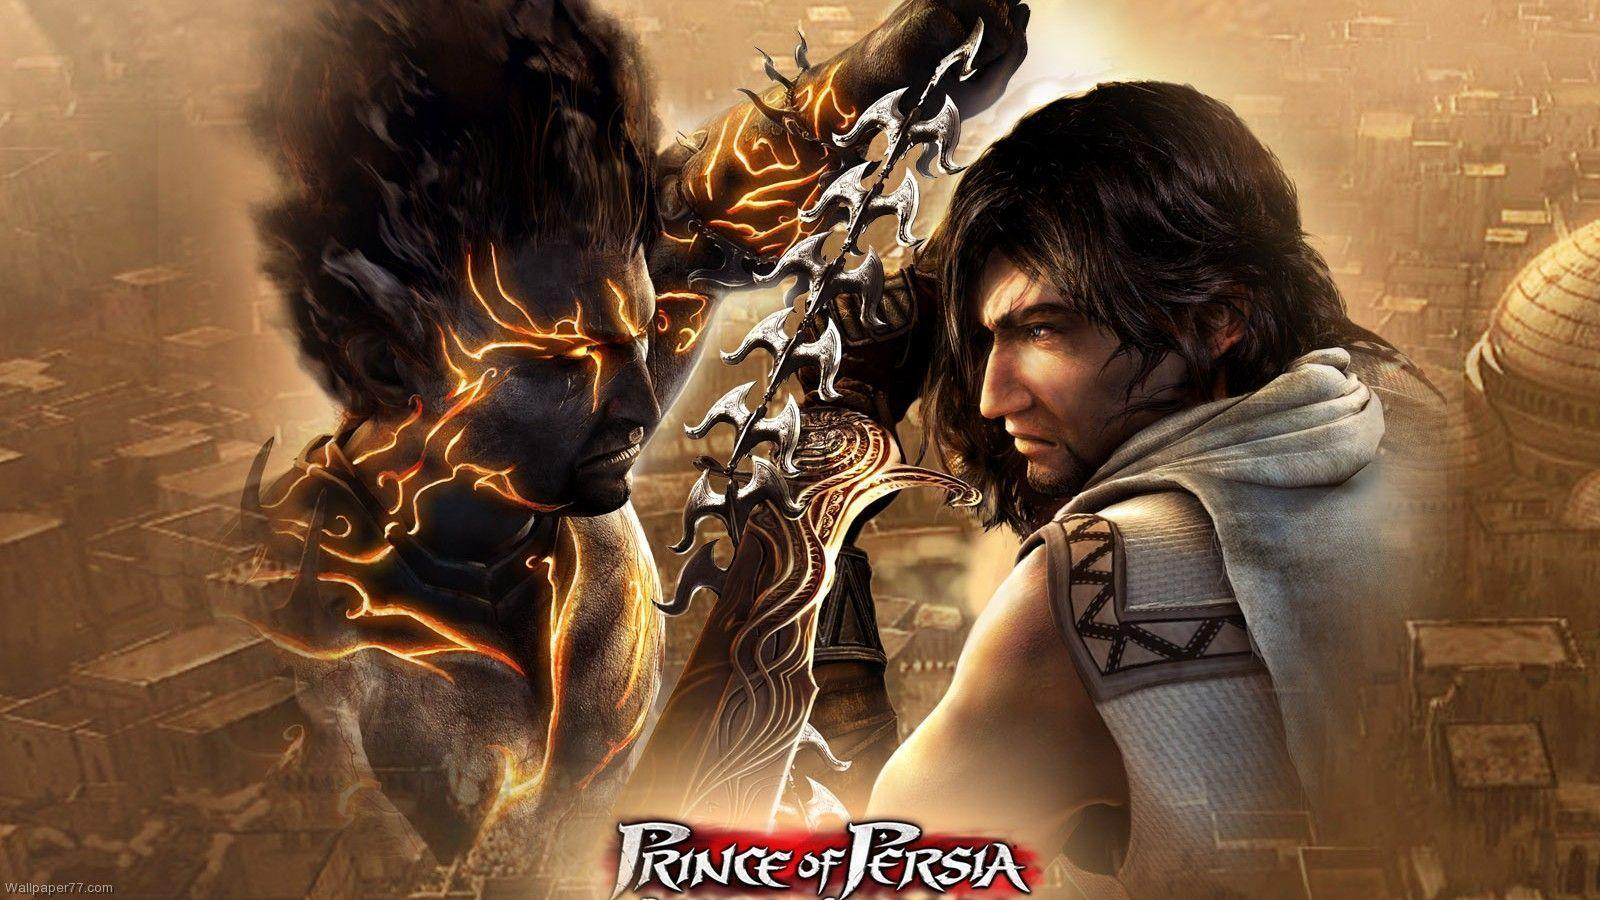 Prince Of Persia The Two Thrones Hd Wallpapers 1080p Prince Of Persia Hd Wallpapers Wallpaper Cave